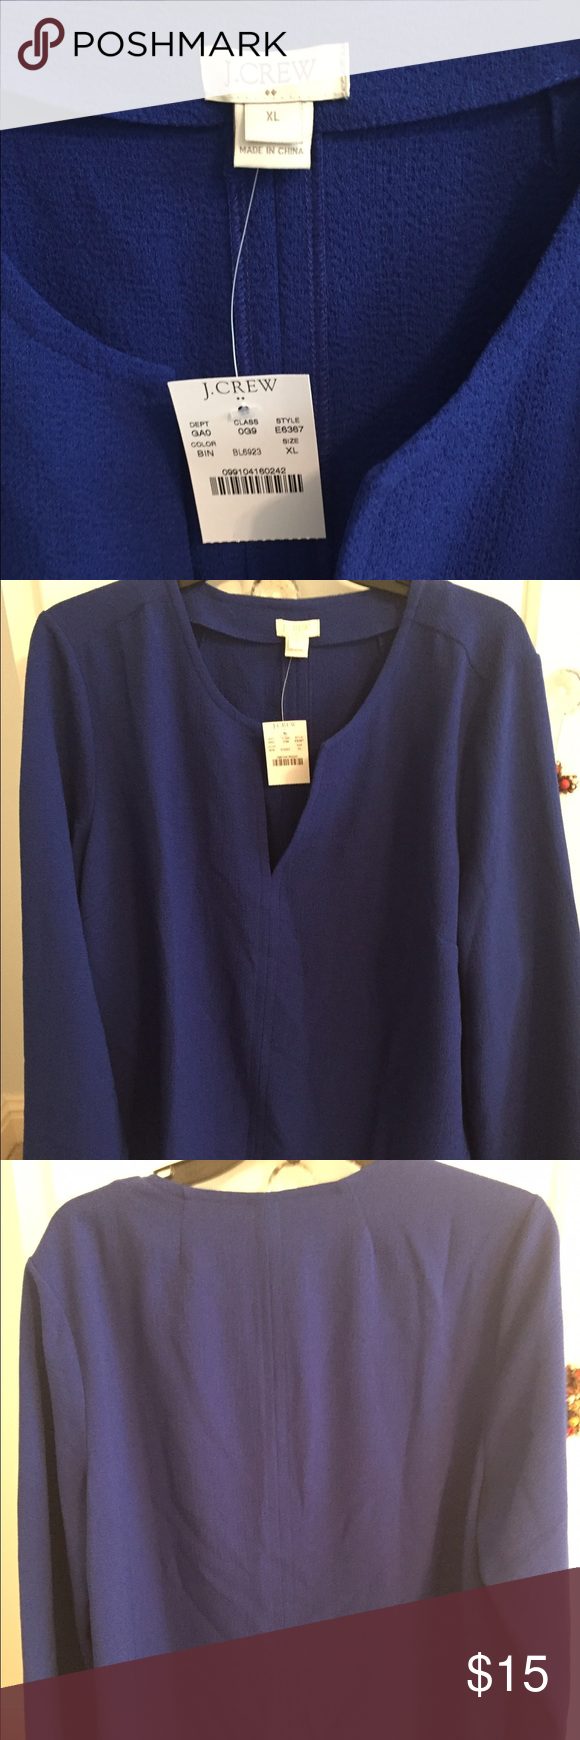 J .Crew top Beautiful, blue top from J.Crew! Never worn, tags still on! J. Crew Factory Tops